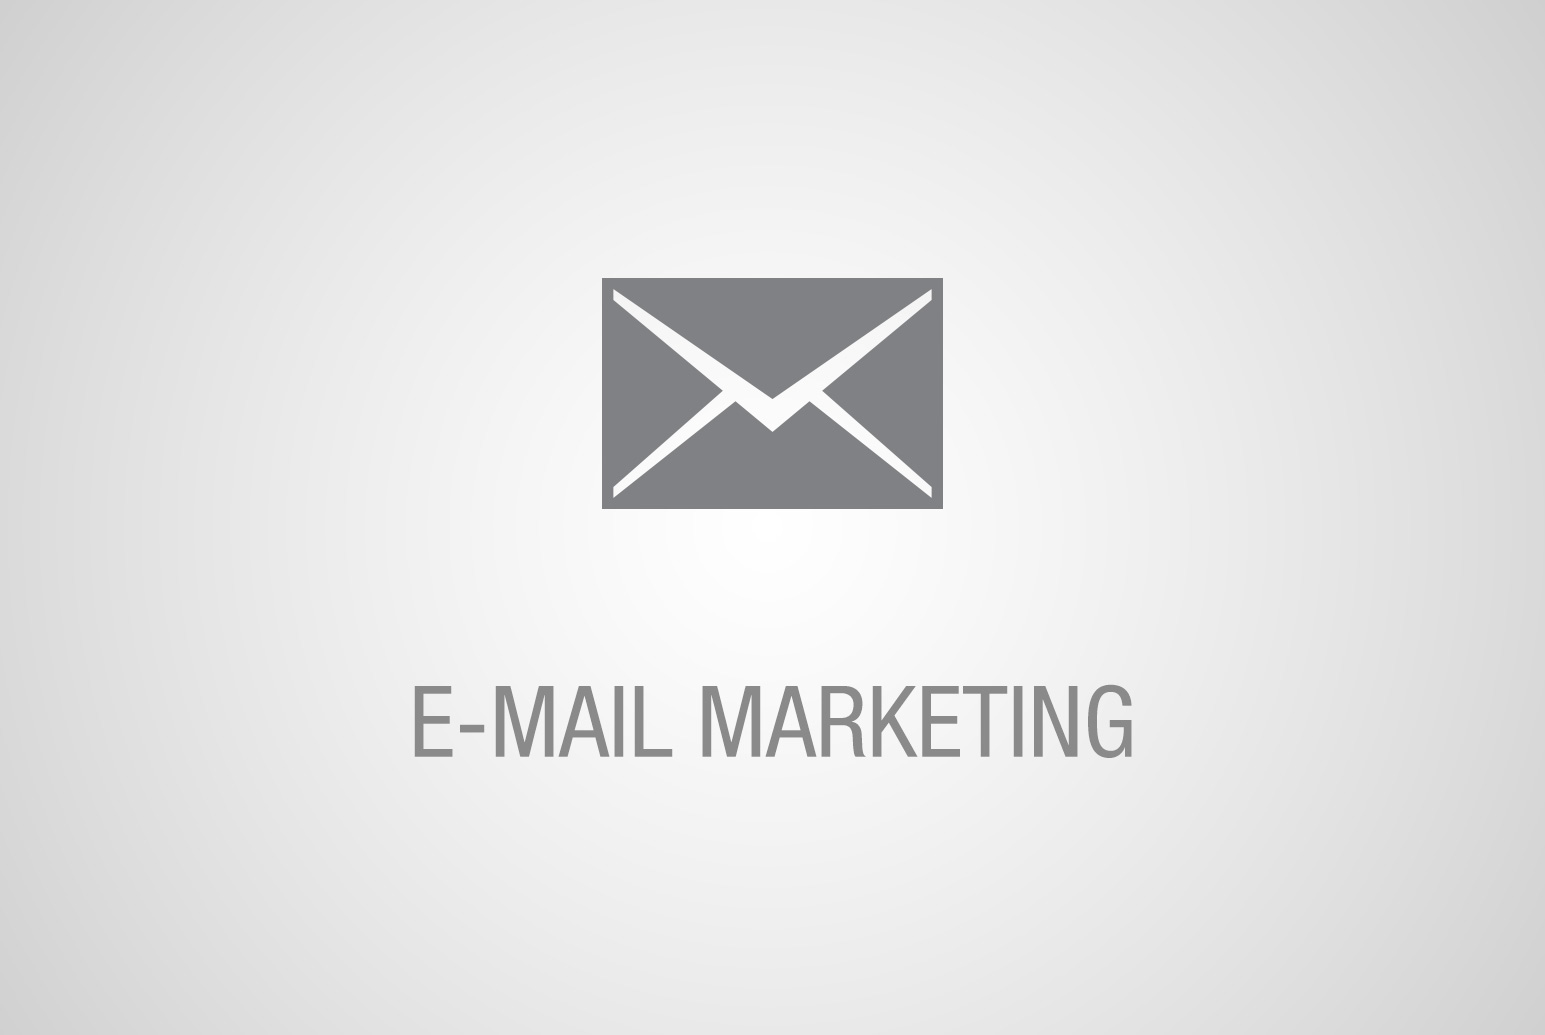 Email campaigns for small business. Communication system services by mass email.